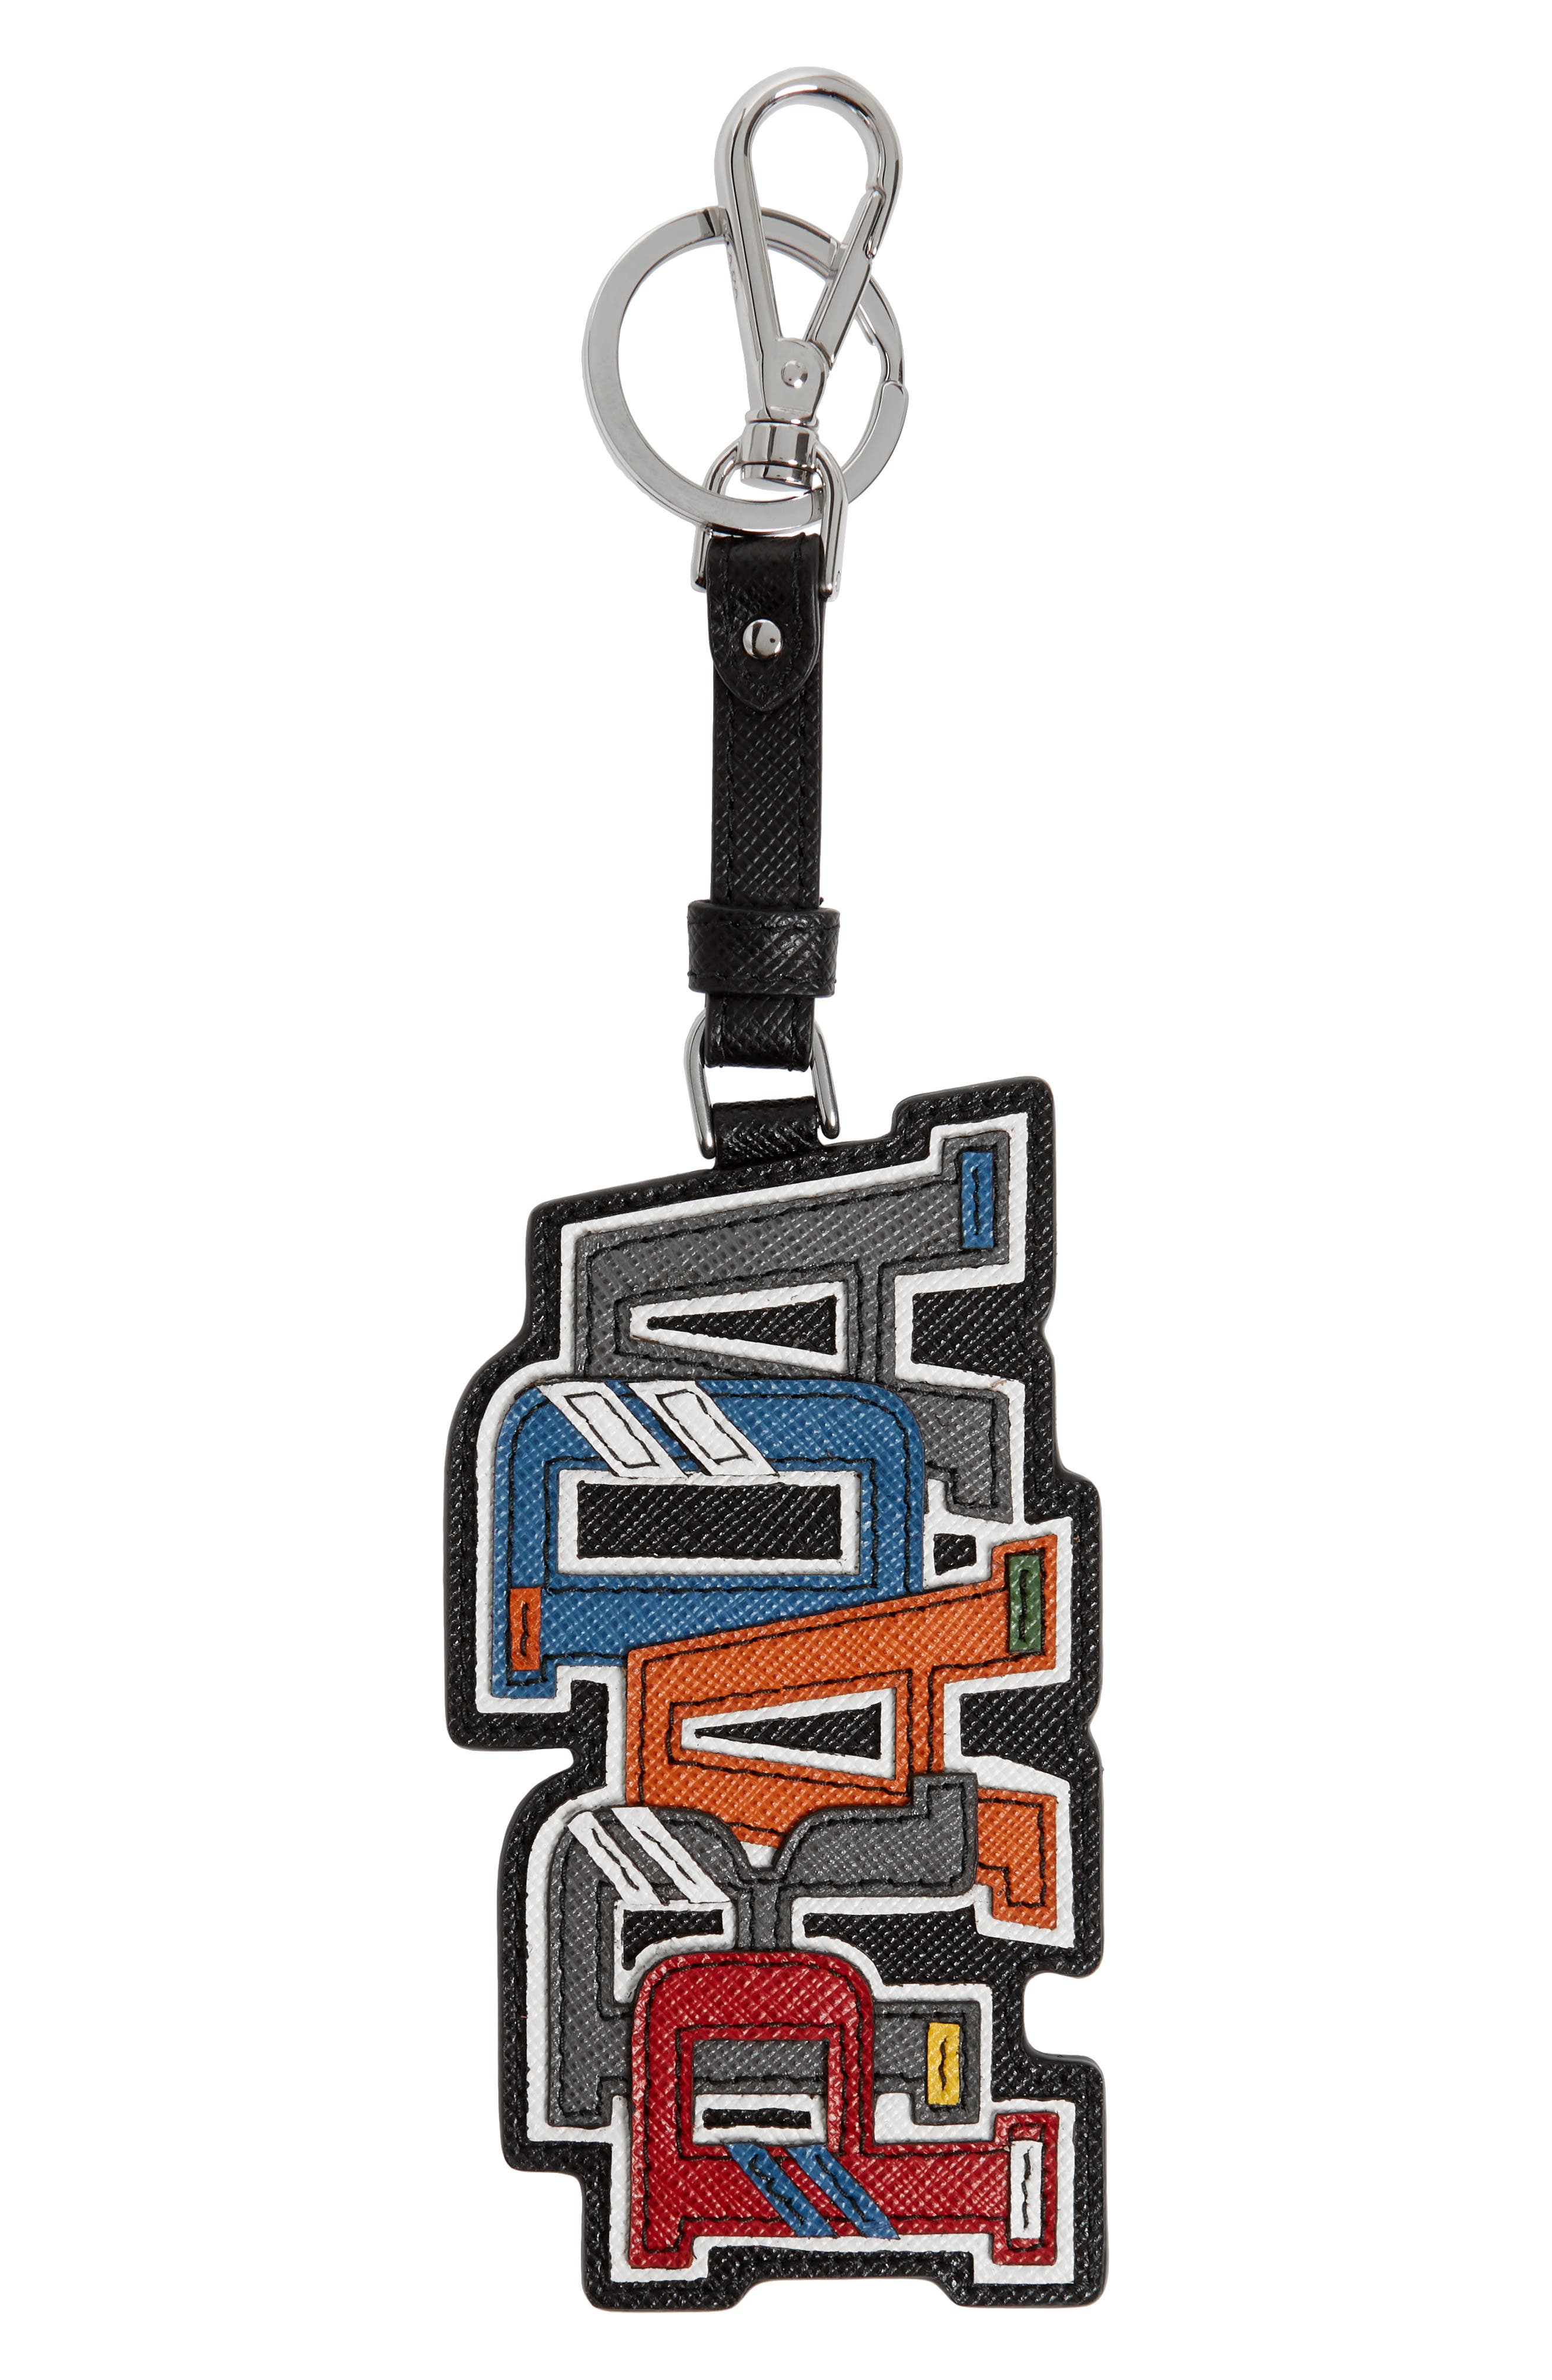 Saffiano Leather Character Key Chain,                             Main thumbnail 1, color,                             F0sgi Nero M